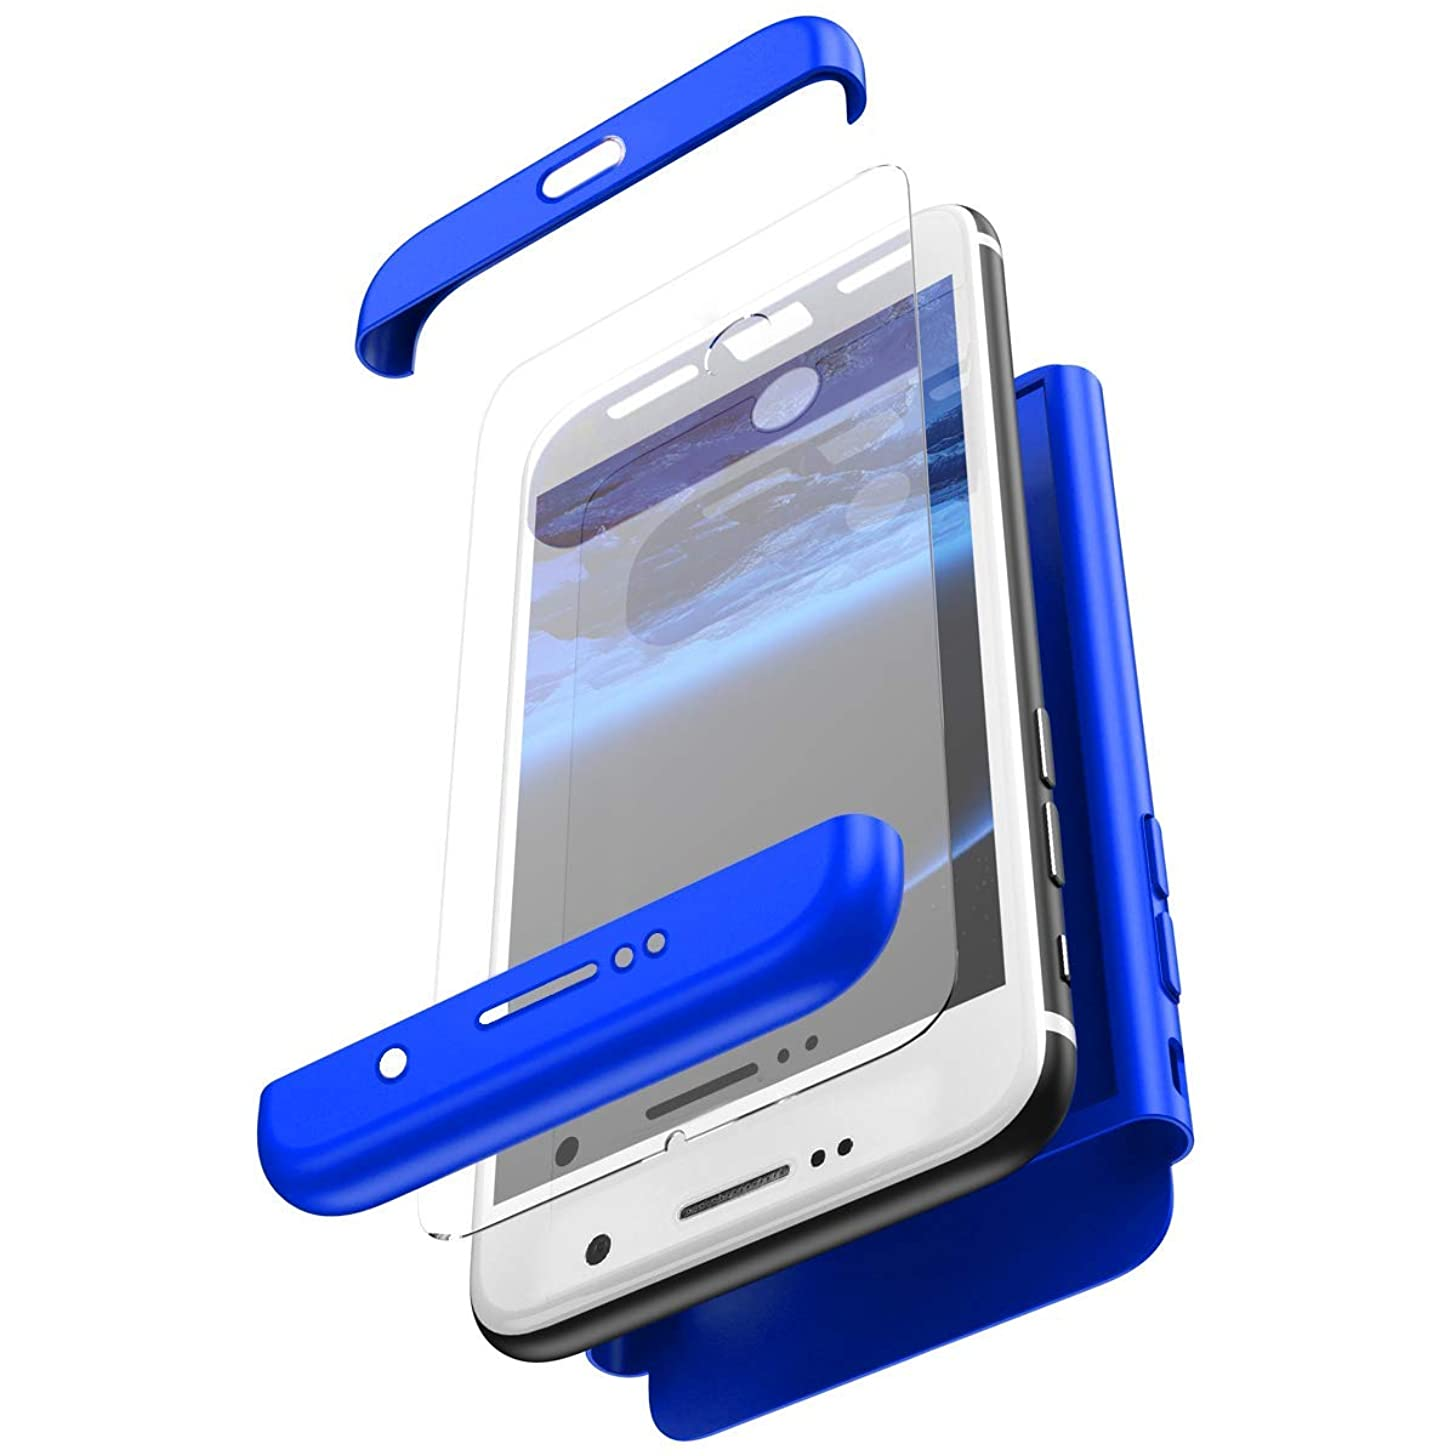 Herbests Compatible with Huawei Mate 10 Case Thin Fit Shockproof 360°Full Body Front Back Hard Case Cover + Tempered Glass Screen Protector All-Around Protective Cover,Blue